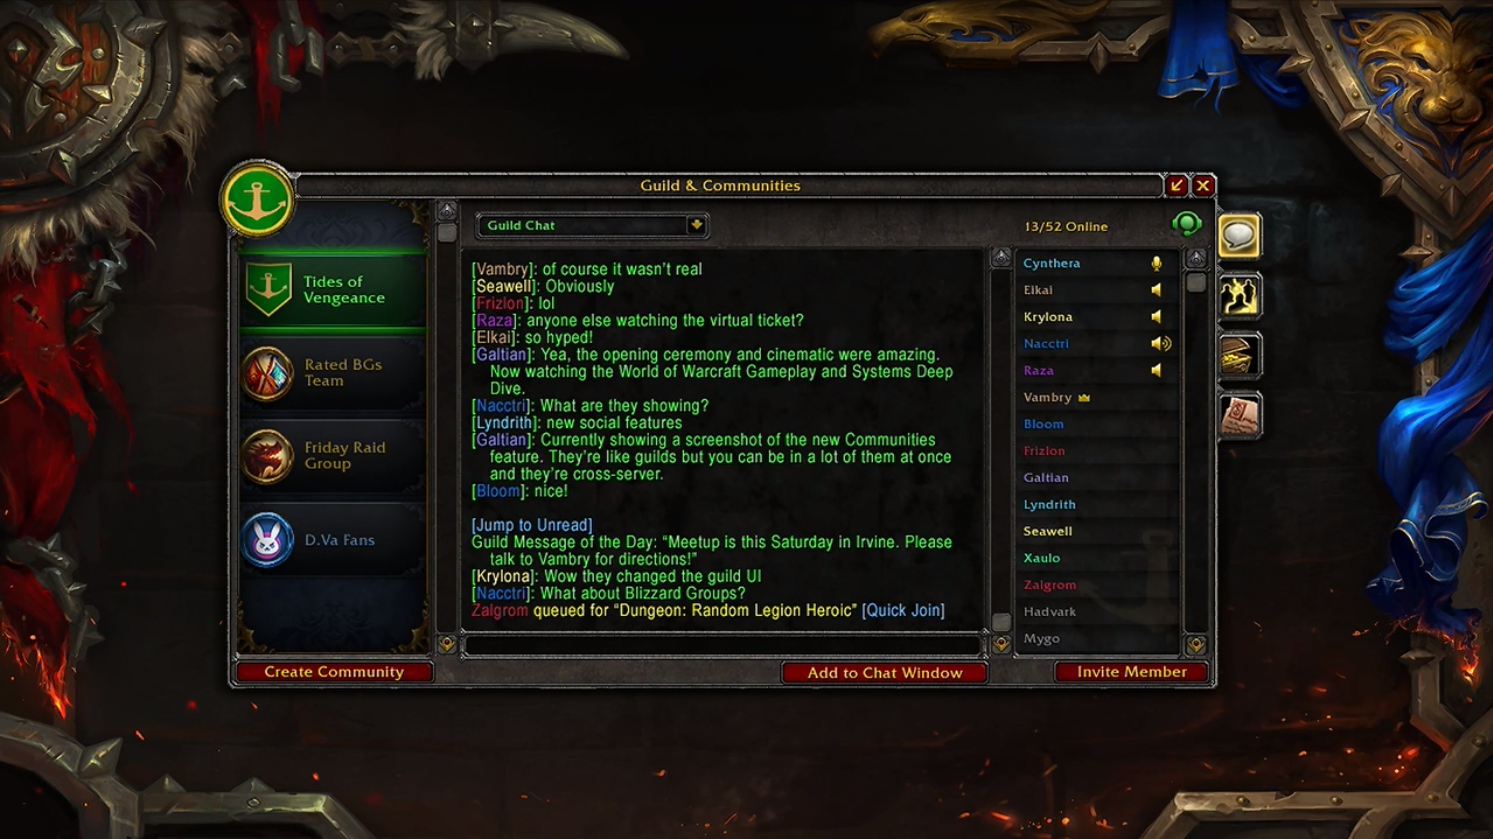 PvP Talents Battle for Azeroth PvP Tiers Communities Upcoming